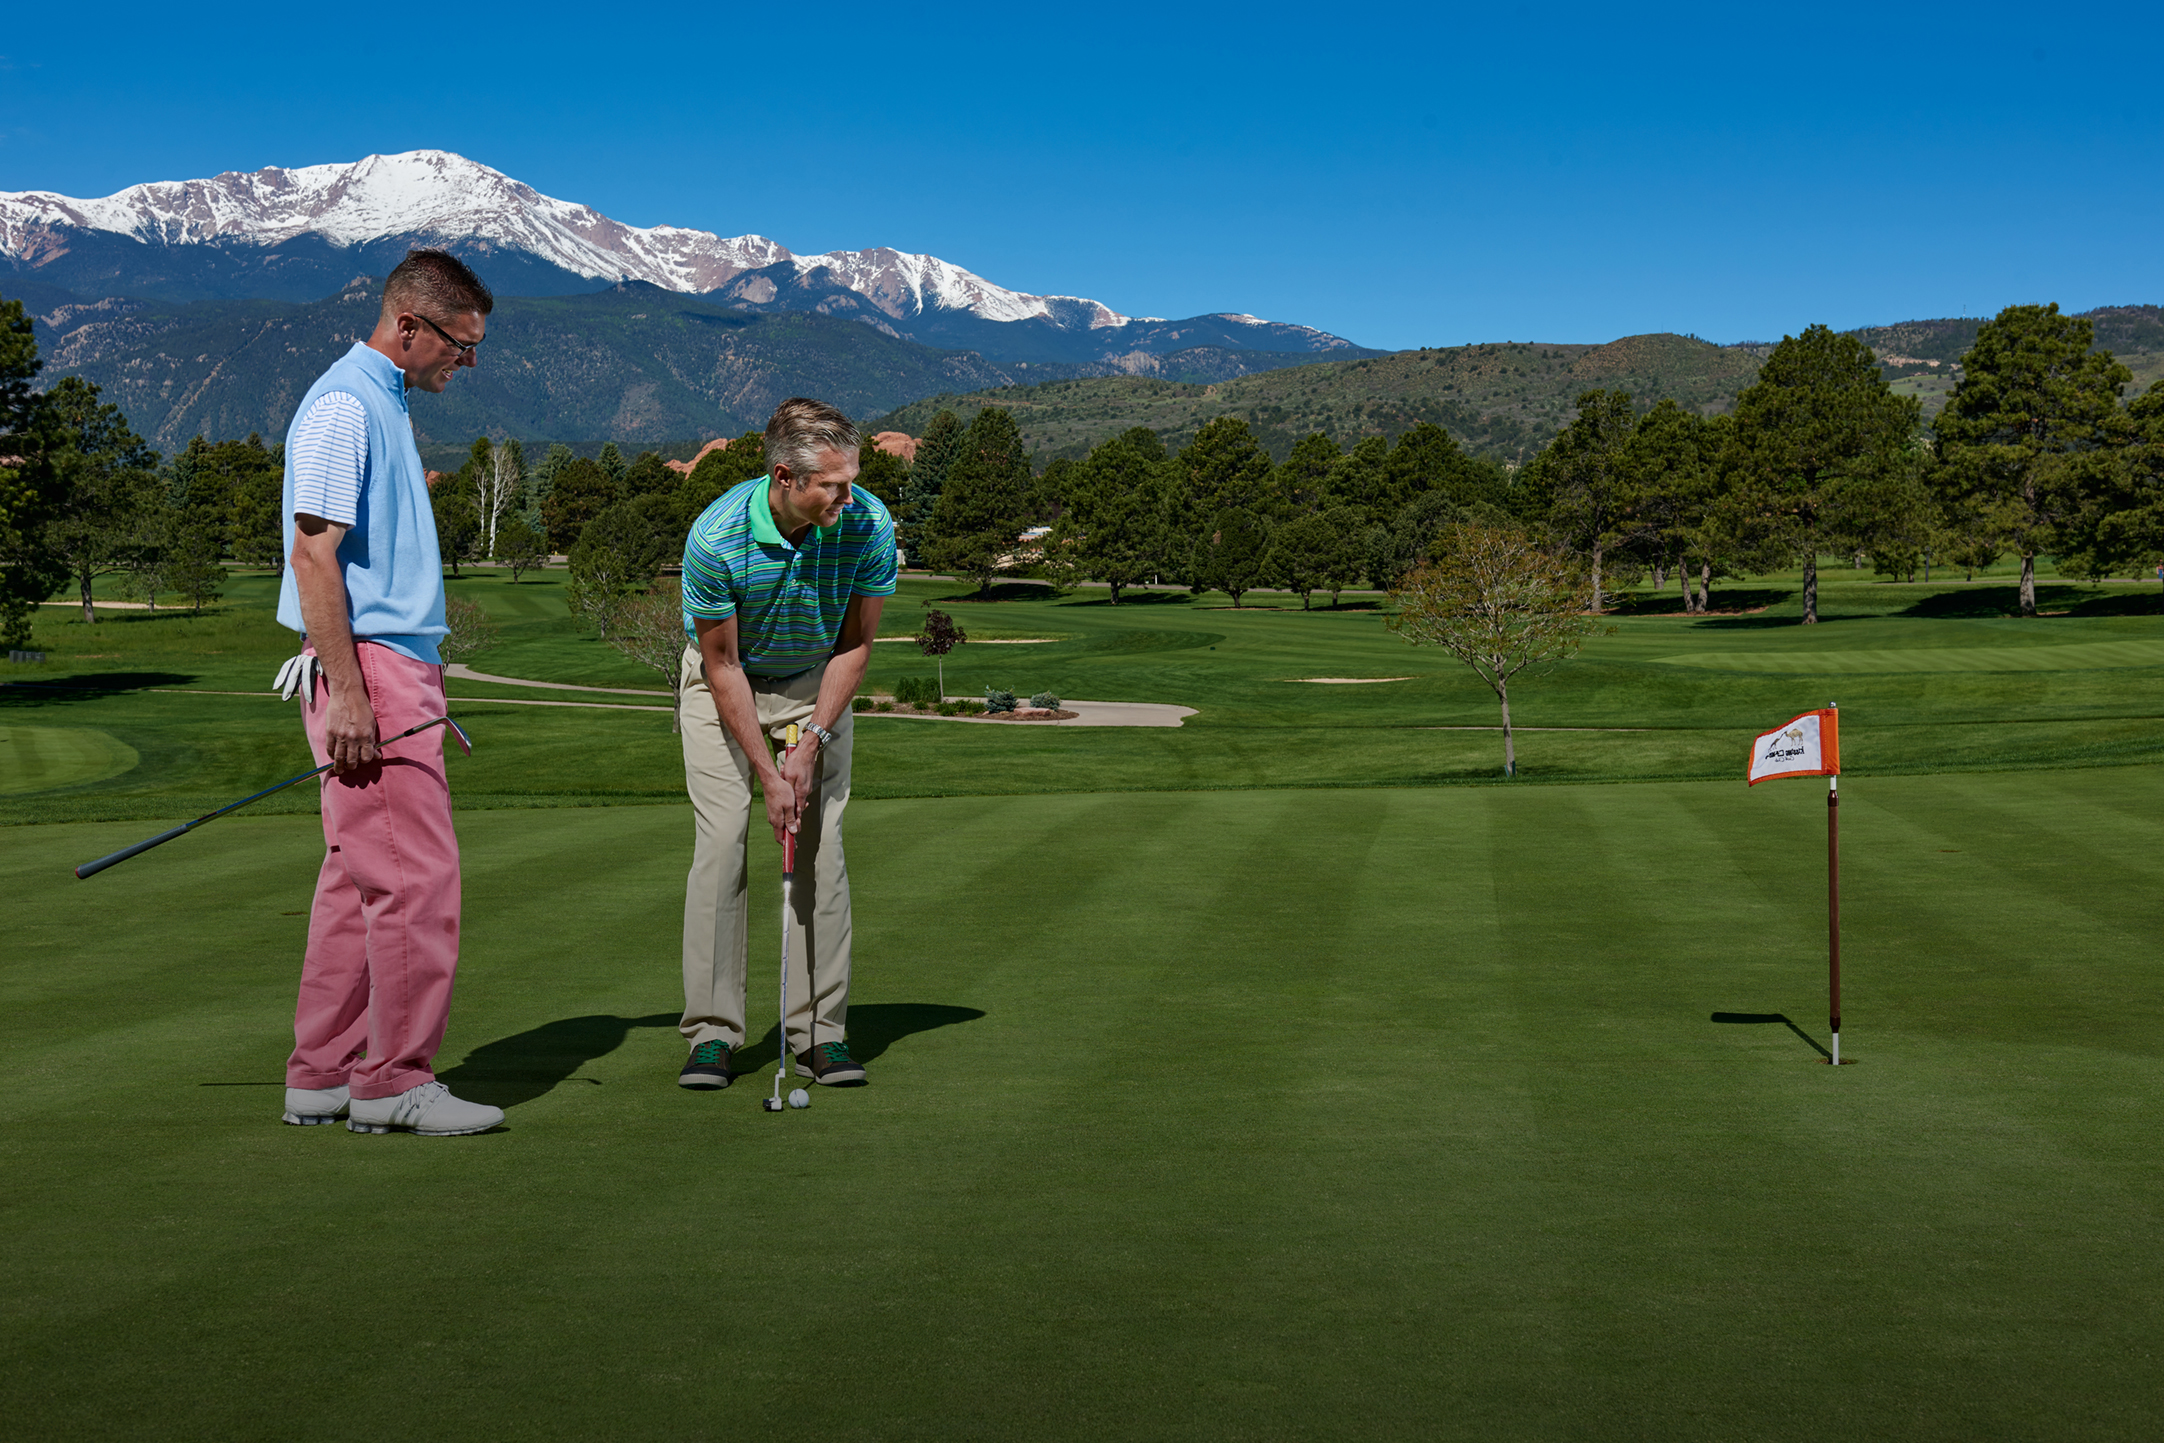 men putting on golf course